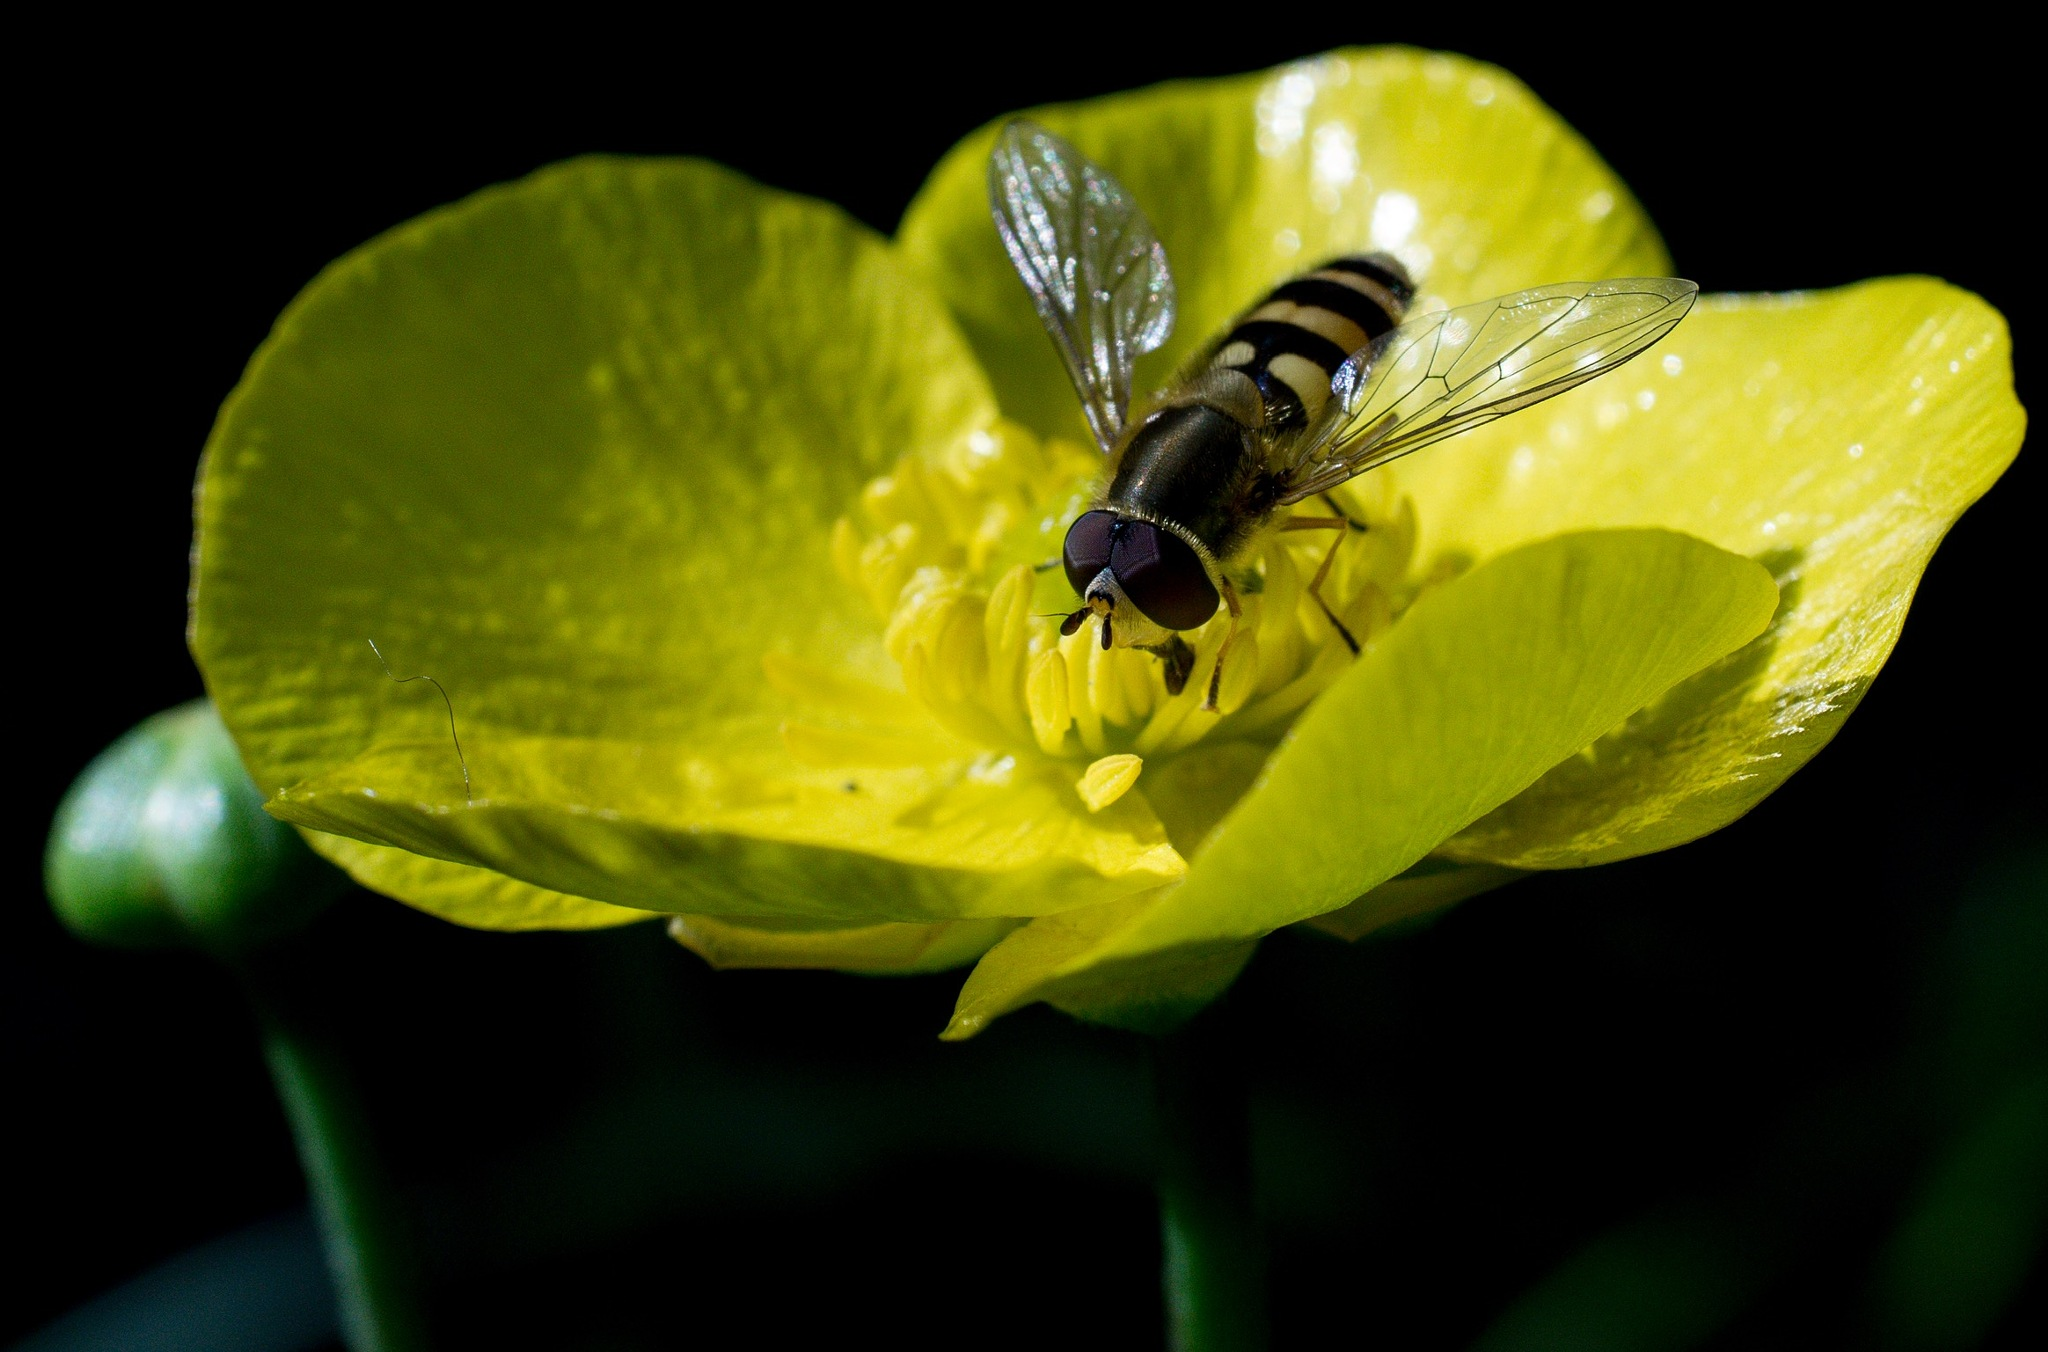 Hover fly on yellow flower by Dave Bloor Snr